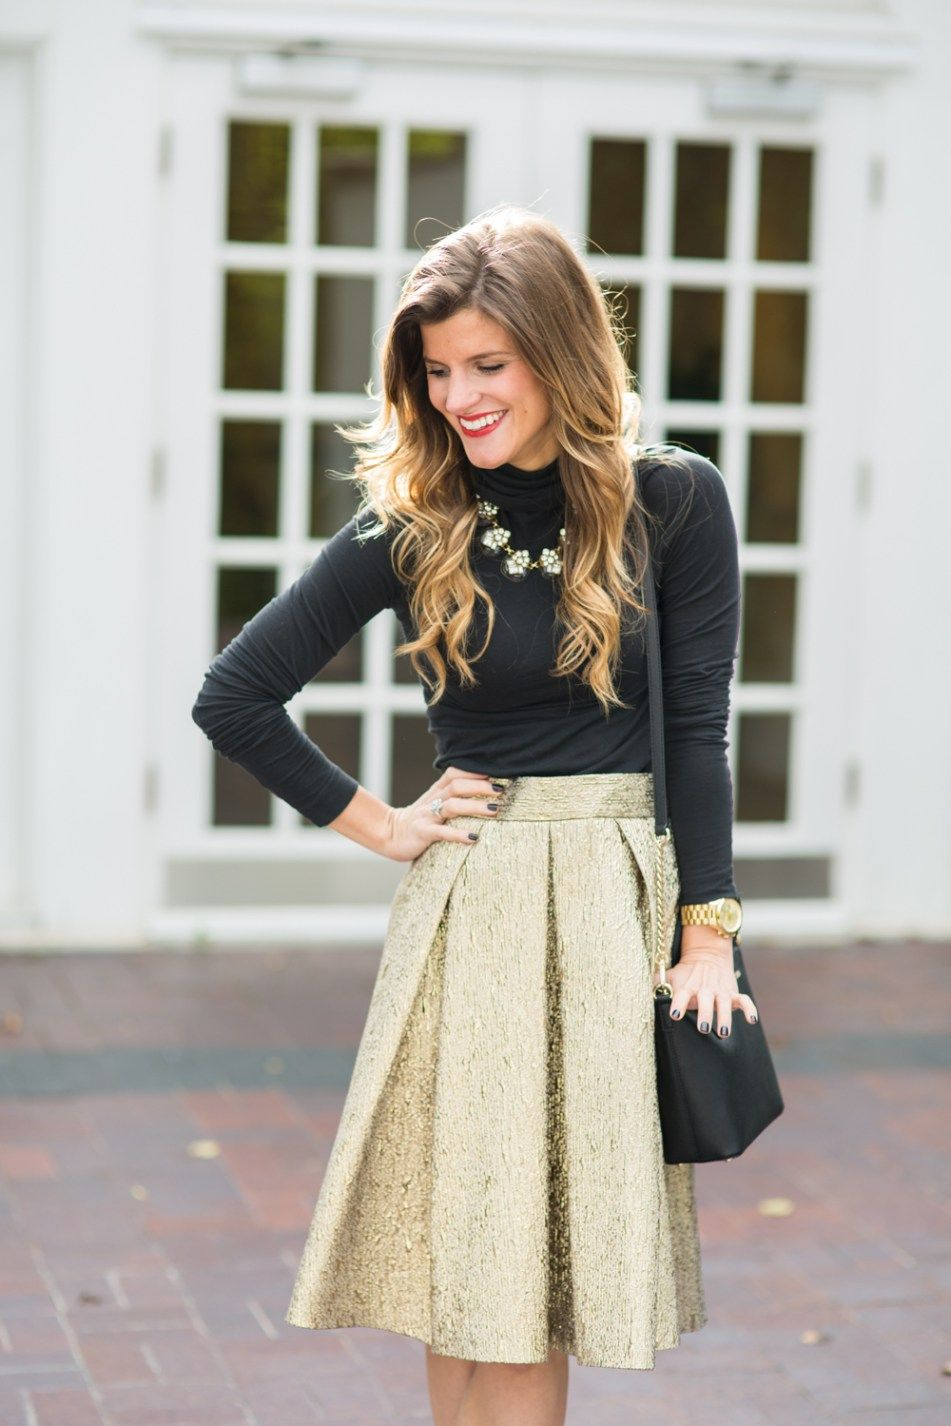 c33aafdc0632 Metallic Gold Skirt and Black Turtleneck Holiday Outfit-58 Holiday Outfits  Women, Party Outfits